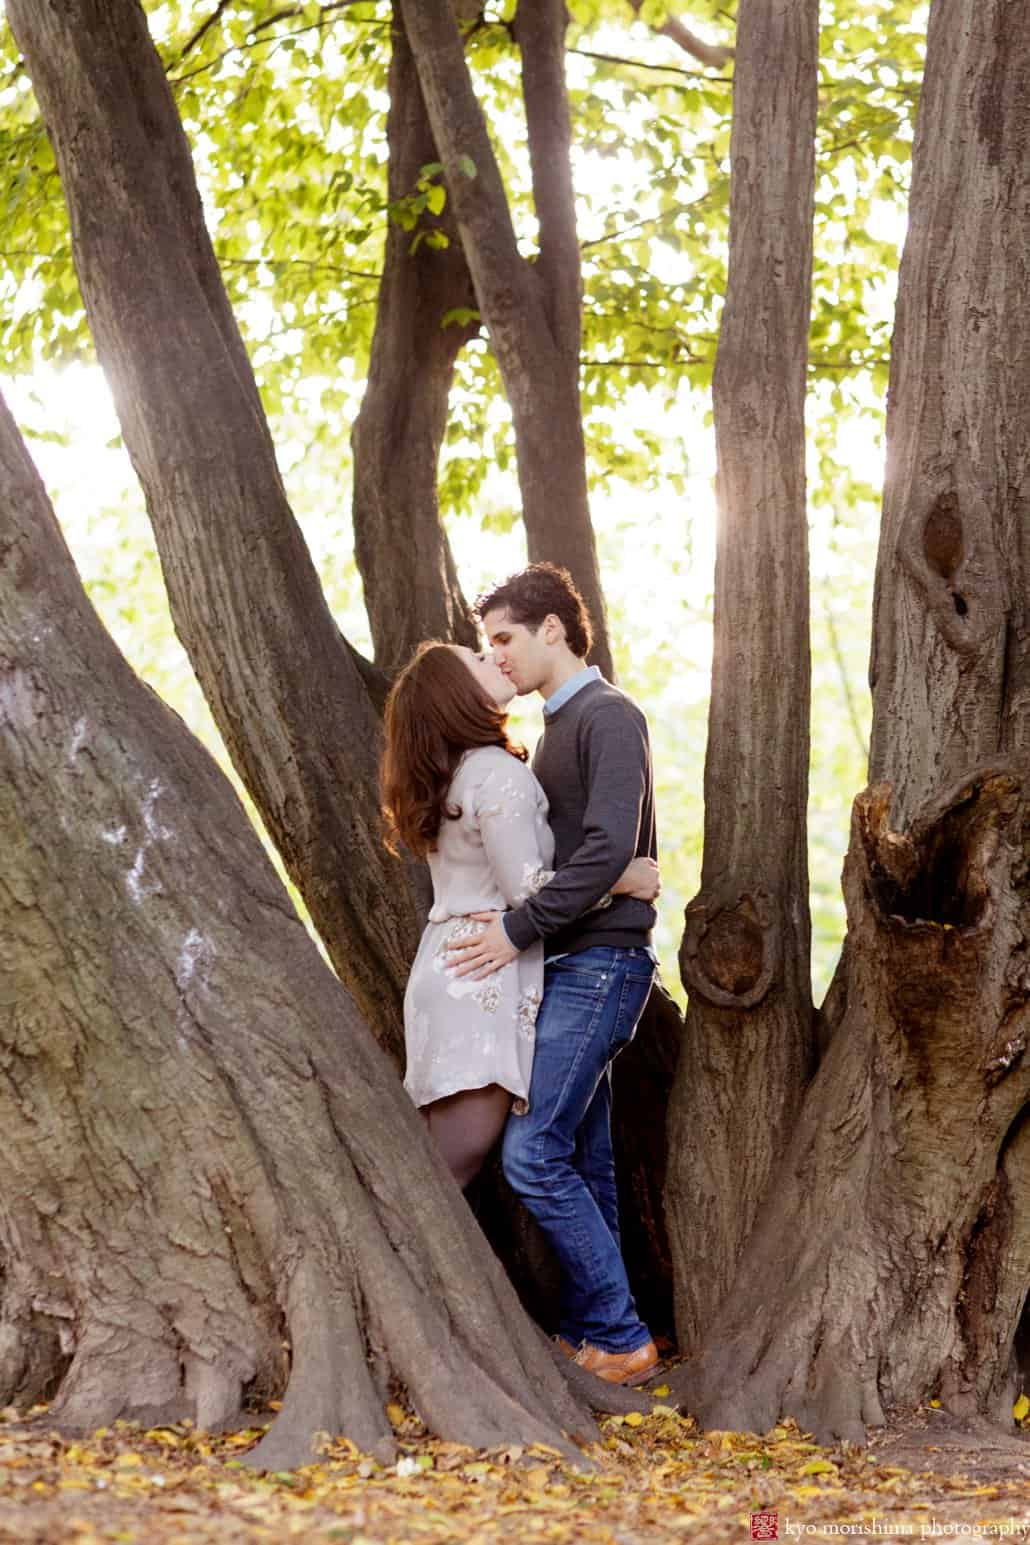 Prospect Park engagement photo: couple kisses while standing among tree trunks, photographed by Kyo Morishima